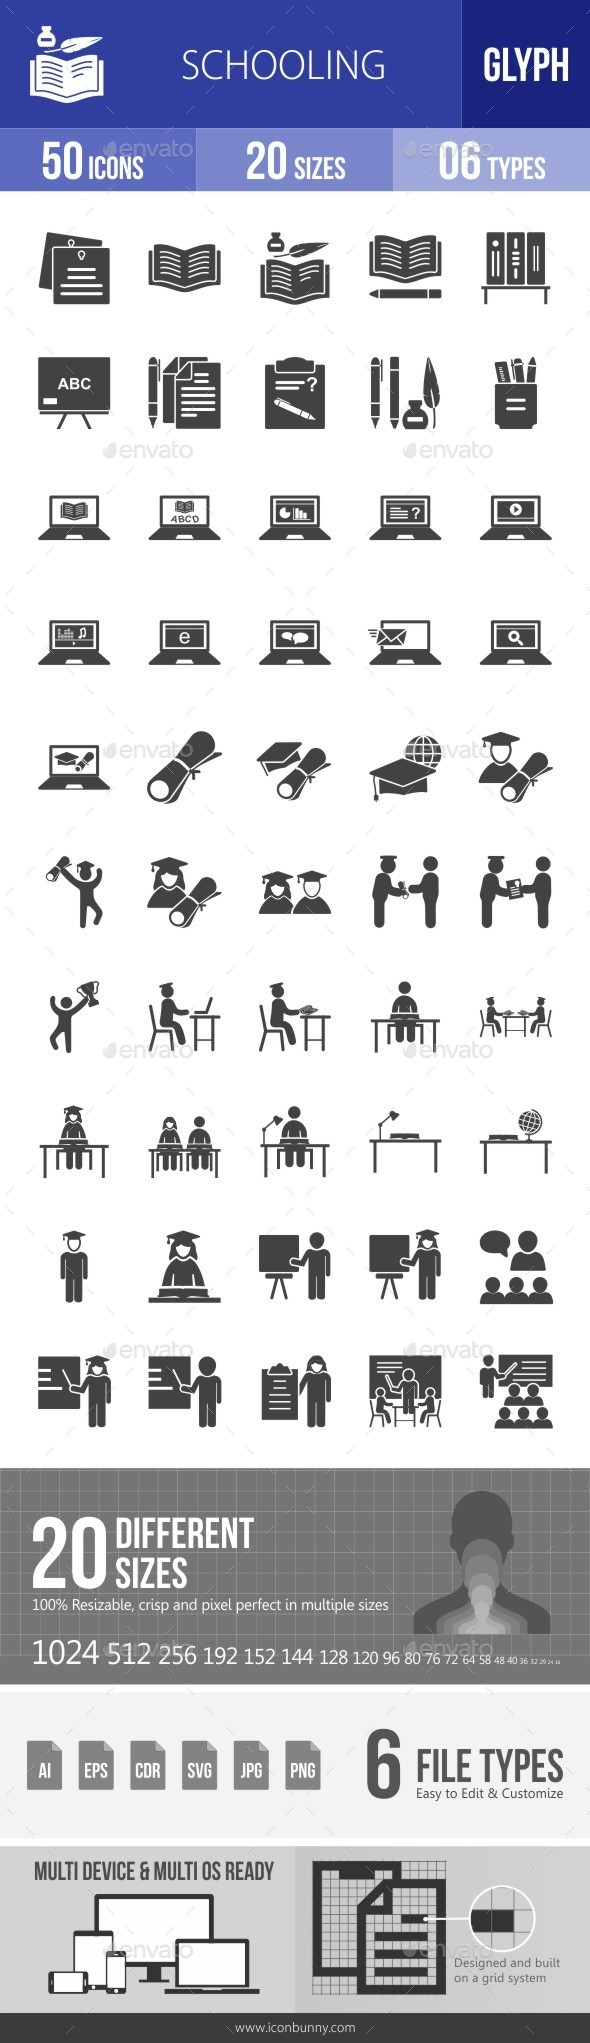 Schooling Glyph Icons - Icons